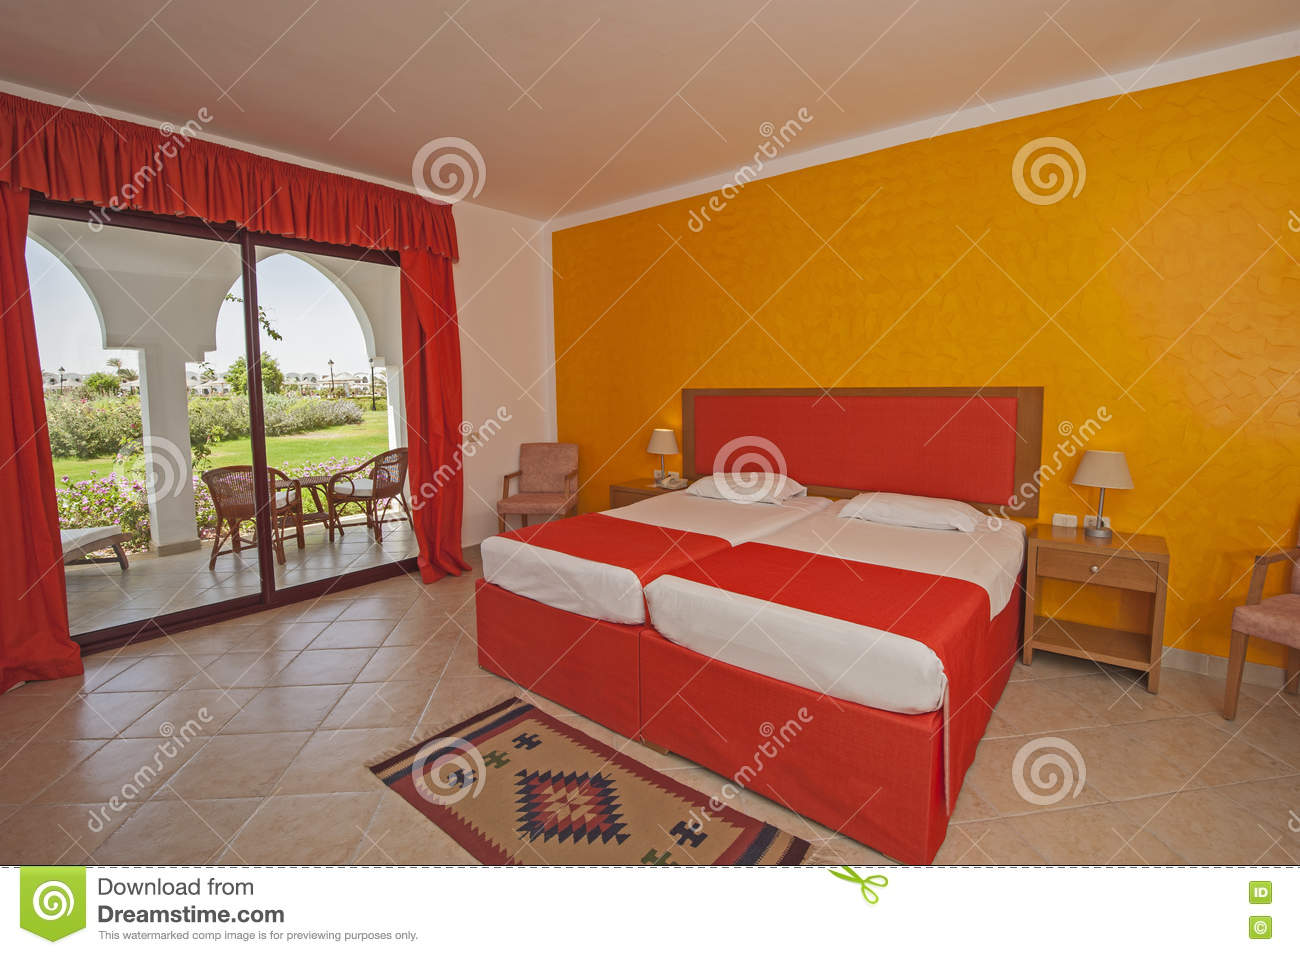 Interior of a luxury hotel bedroom with balcony stock for Interior design bedroom with balcony